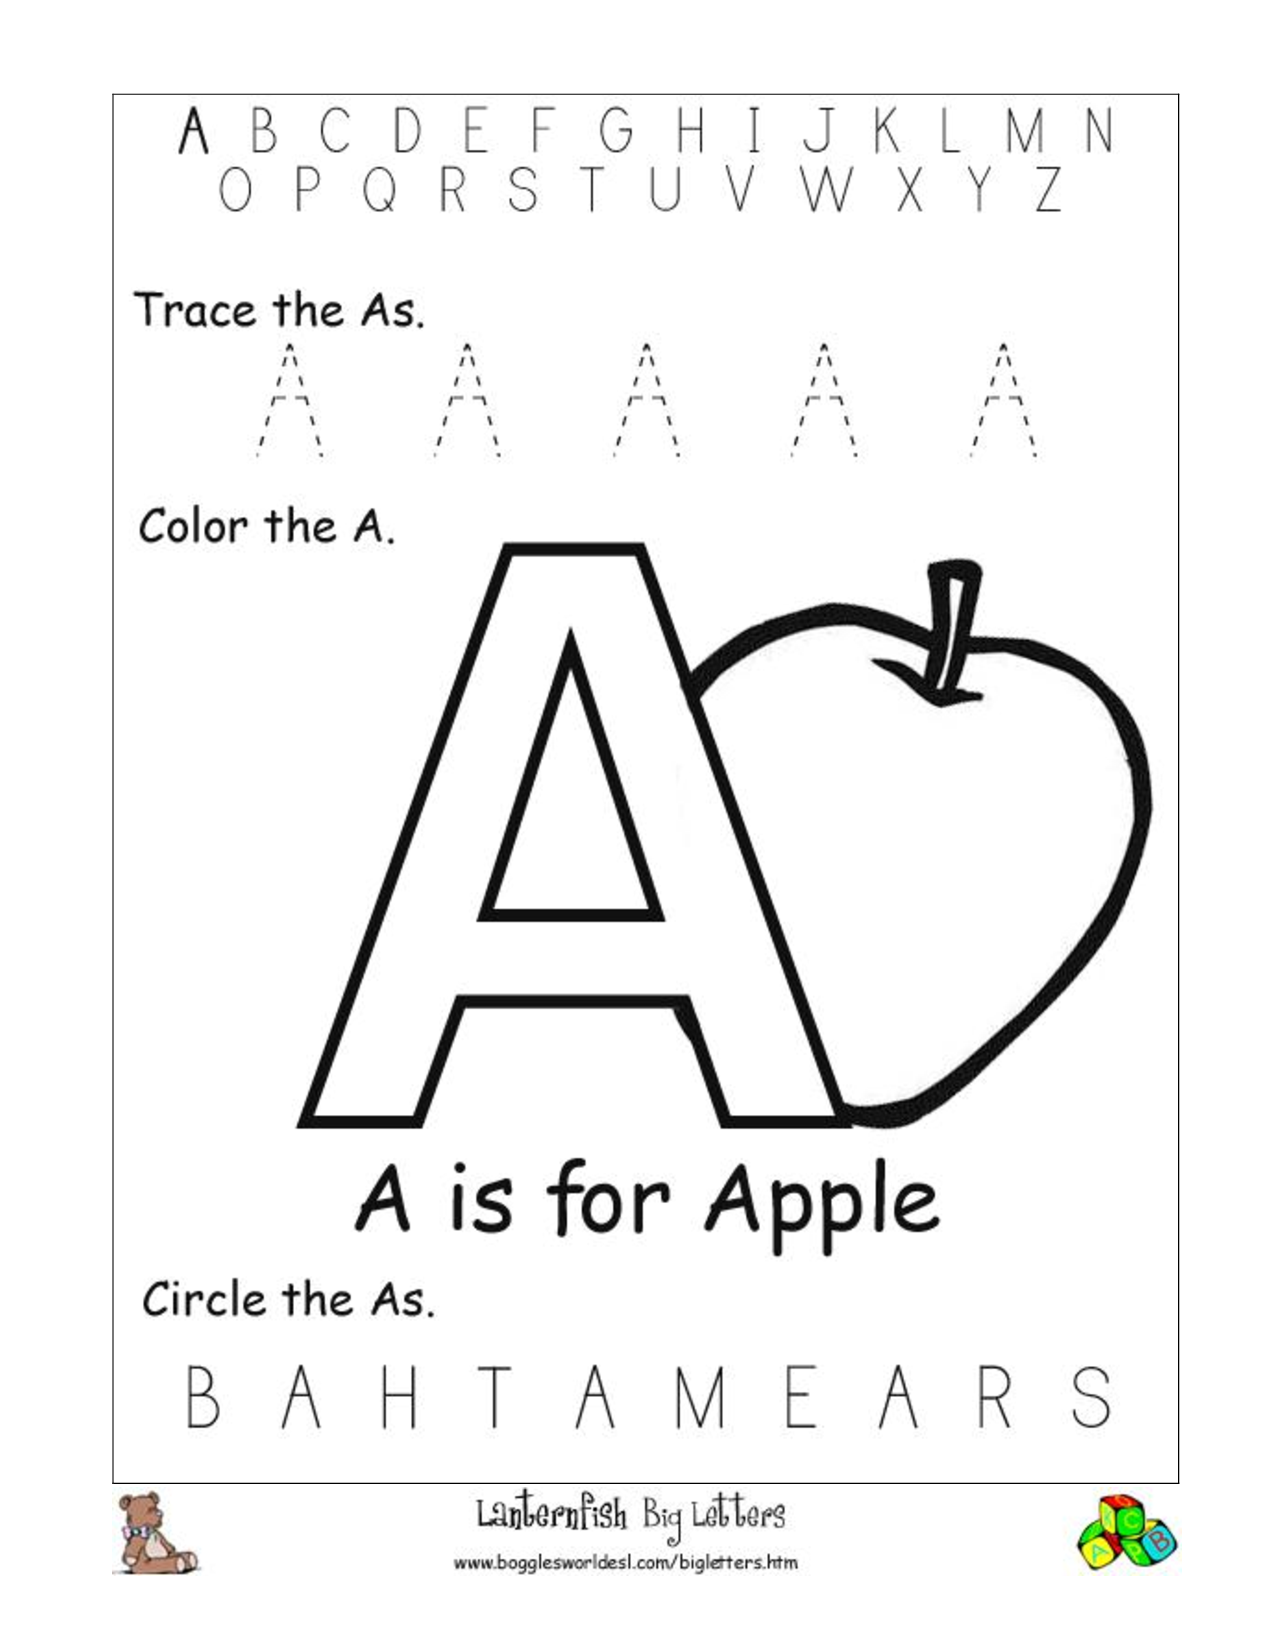 worksheet Alphabet Recognition Worksheets letter recognition worksheets alphabet worksheet big a download as doc